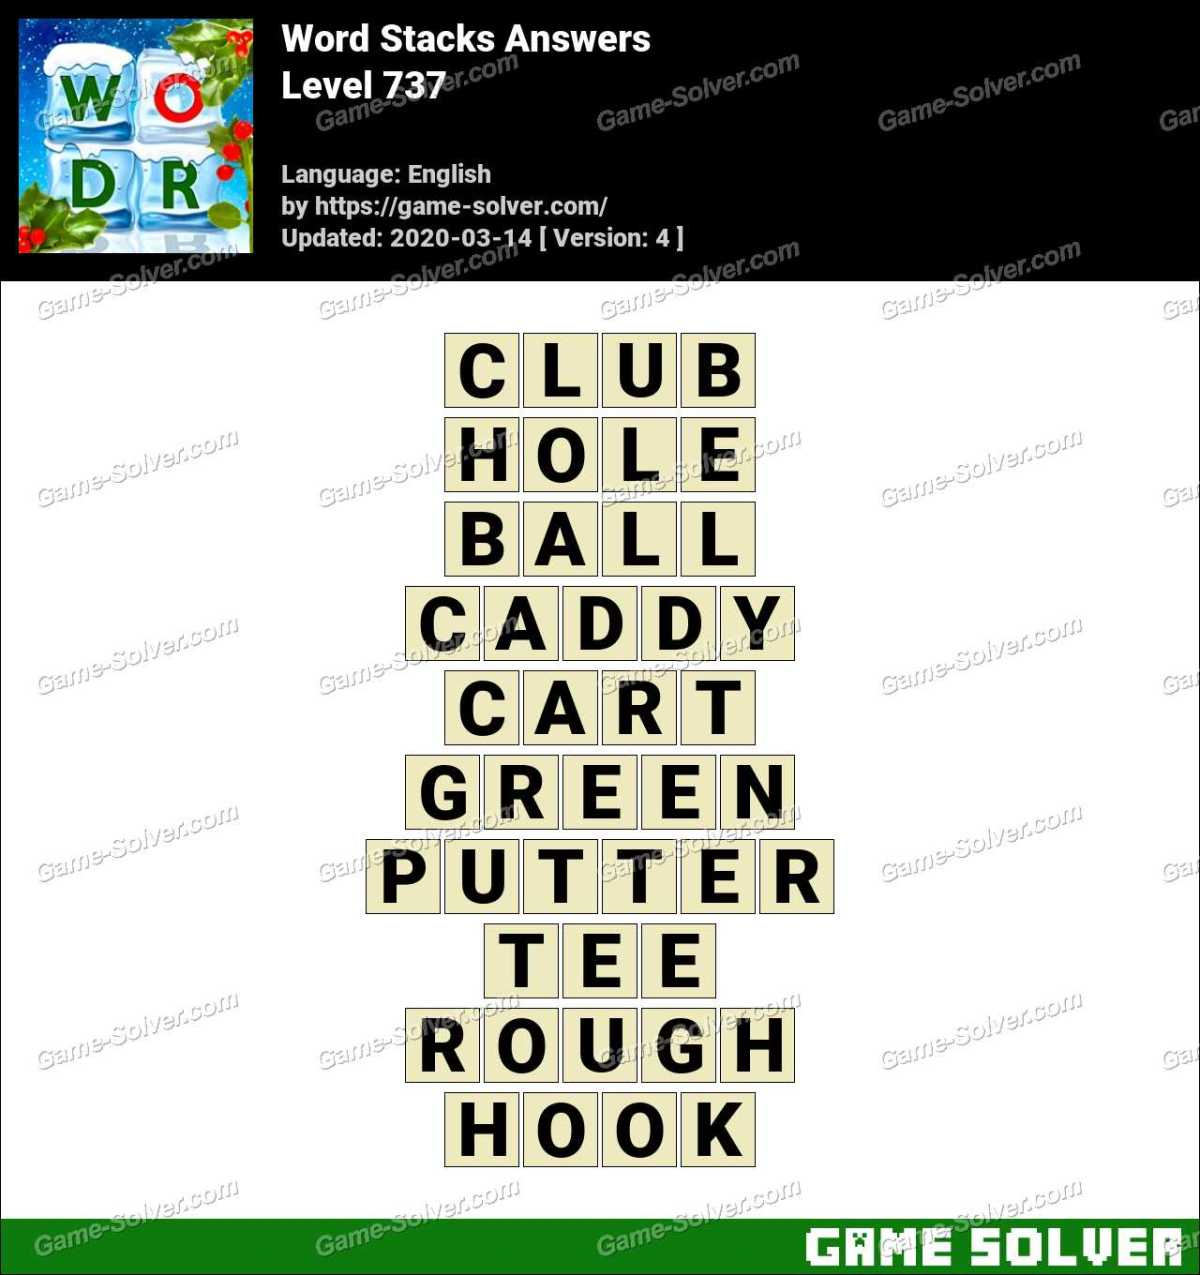 Word Stacks Level 737 Answers